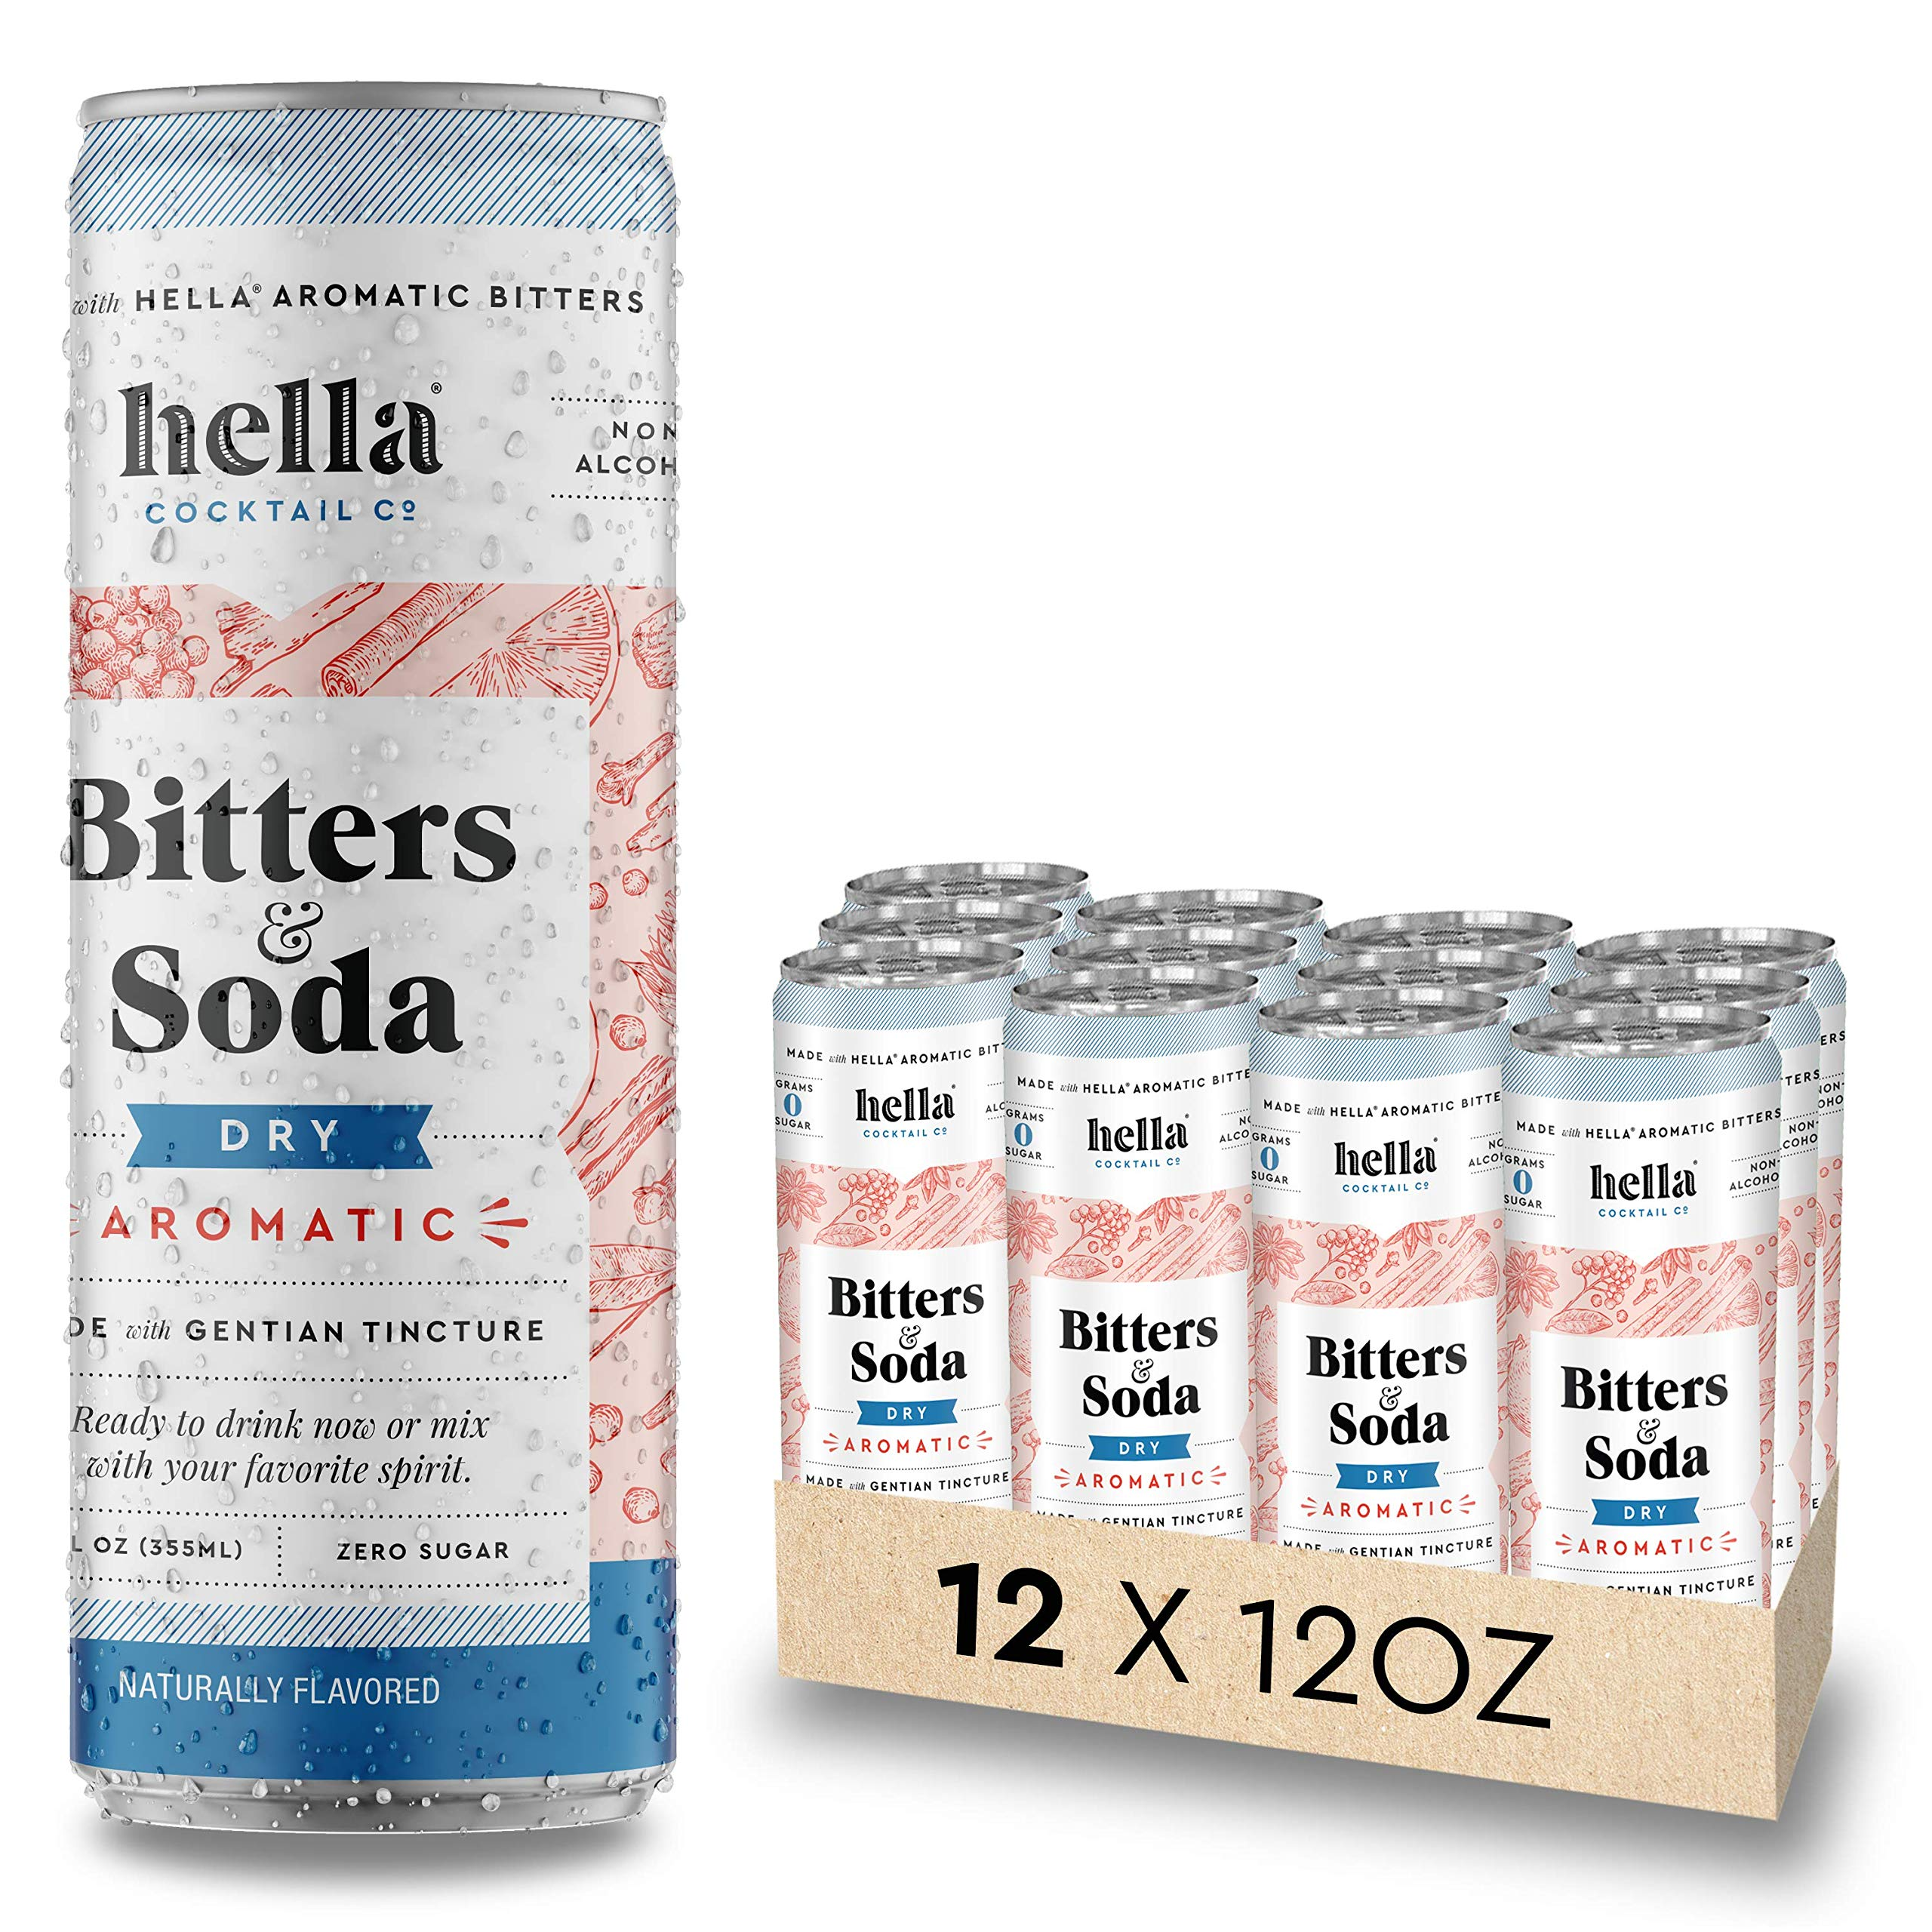 Hella Cocktail Co.   Dry Aromatic Bitters & Soda   12oz Cans (Case of 12)   Ready to Drink or Use as Cocktail Mixer   All Natural Ingredients, Made with Gentian Tincture